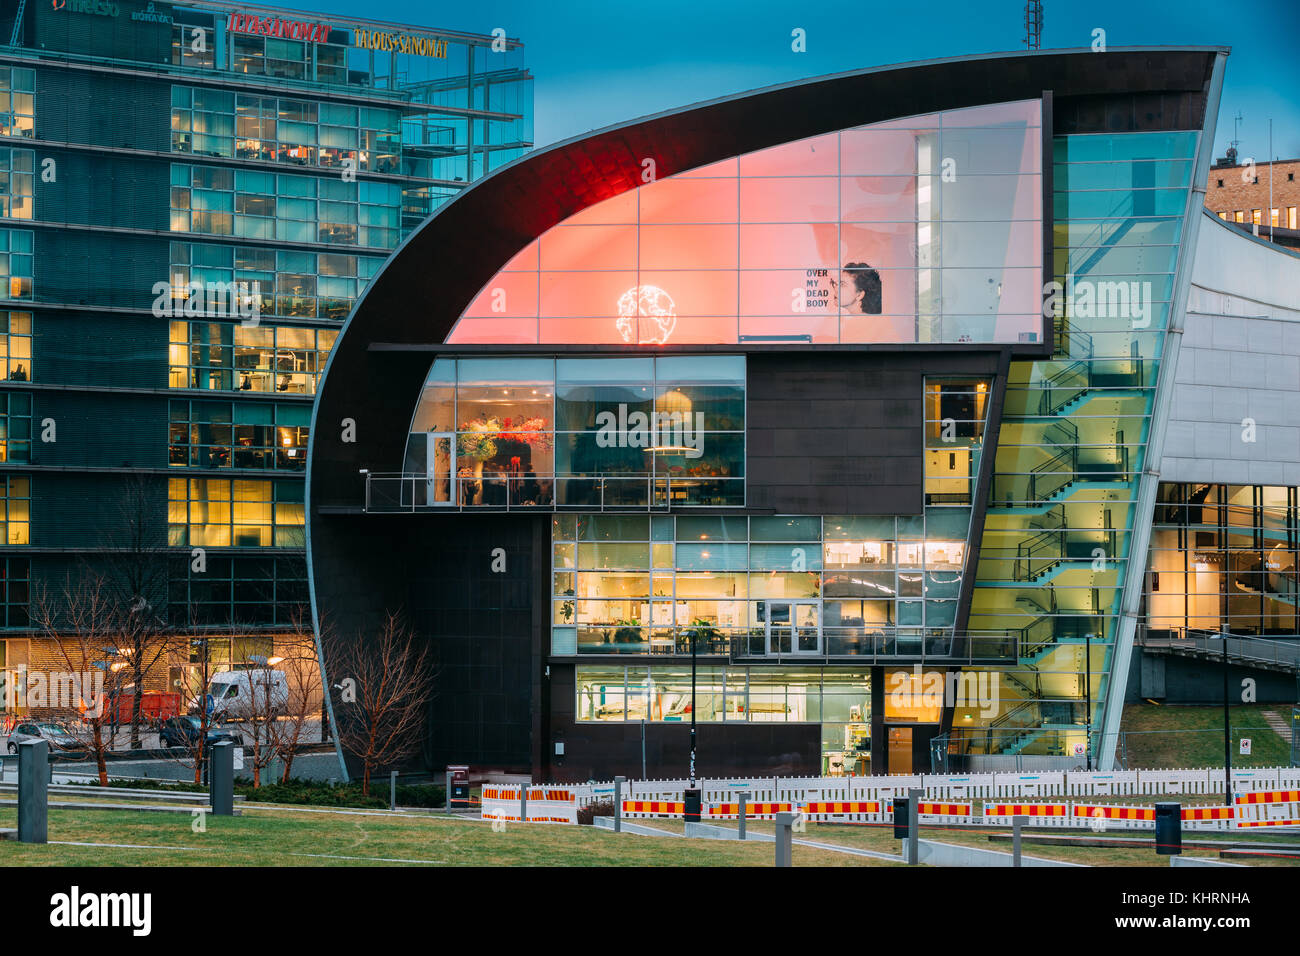 Helsinki, Finland - December 7, 2016: Evening Night View Of Kiasma Contemporary Art Museum. The Museum Exhibits - Stock Image